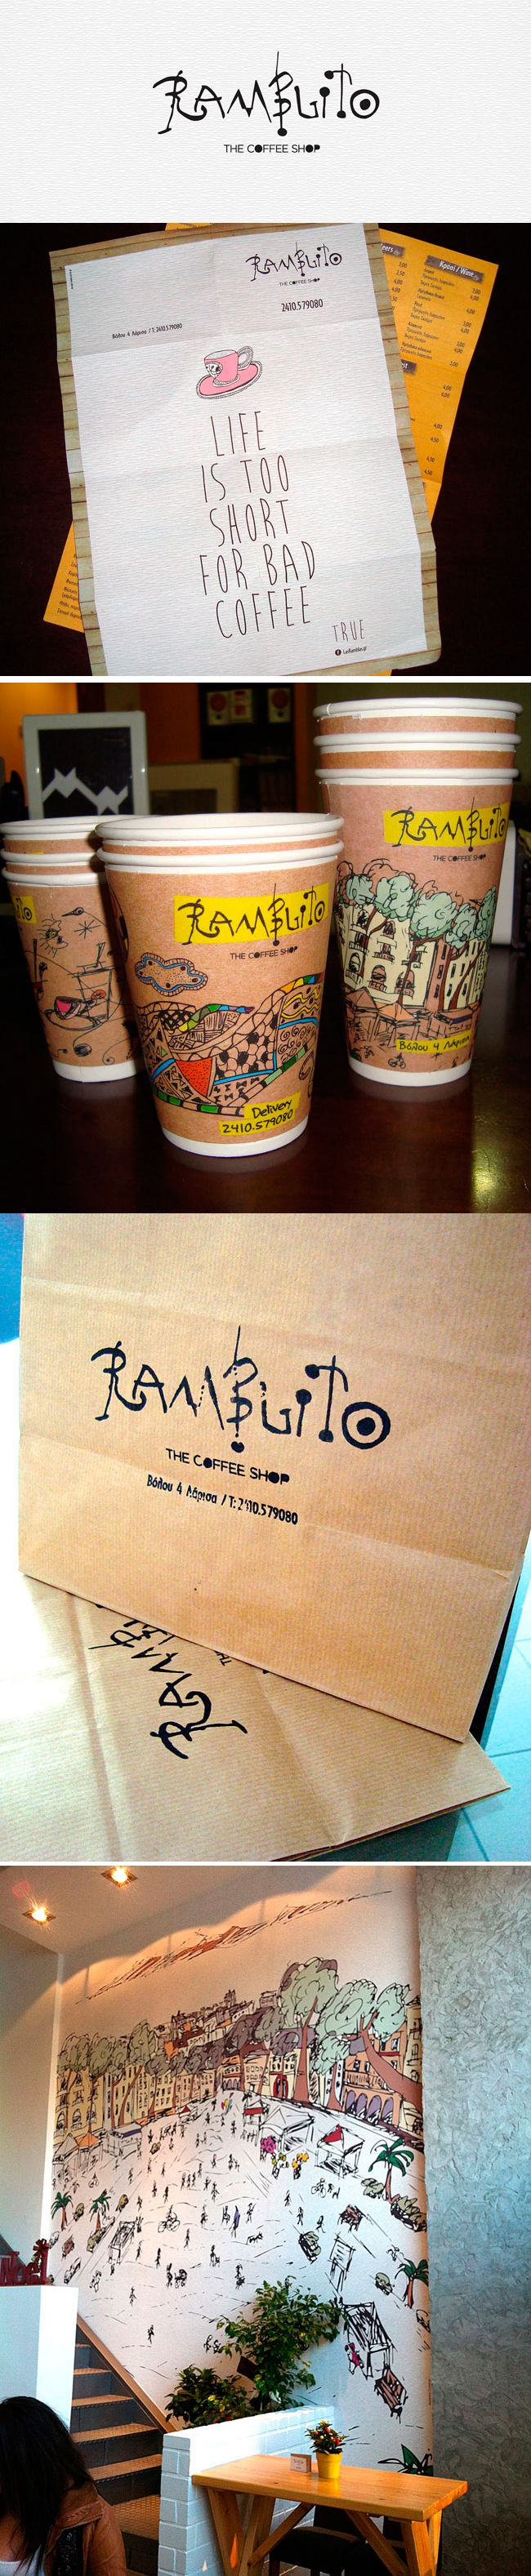 Ramblito coffee shop fun #identity #packaging PD